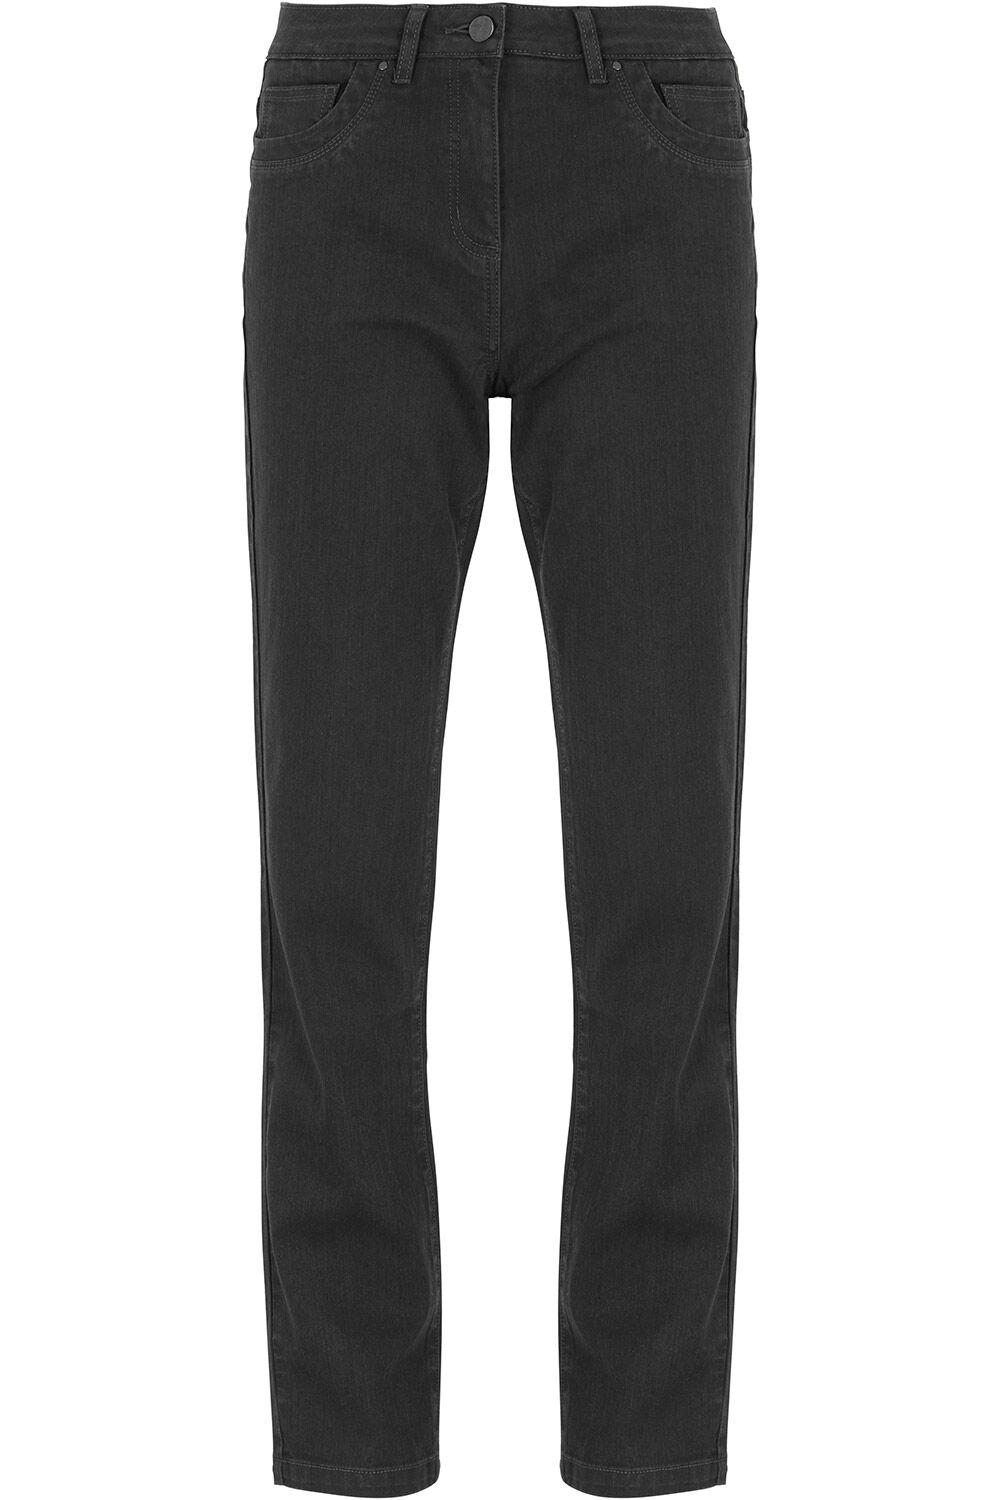 Find style&co tummy control jeans at ShopStyle. Shop the latest collection of style&co tummy control jeans from the most popular stores - all in one.